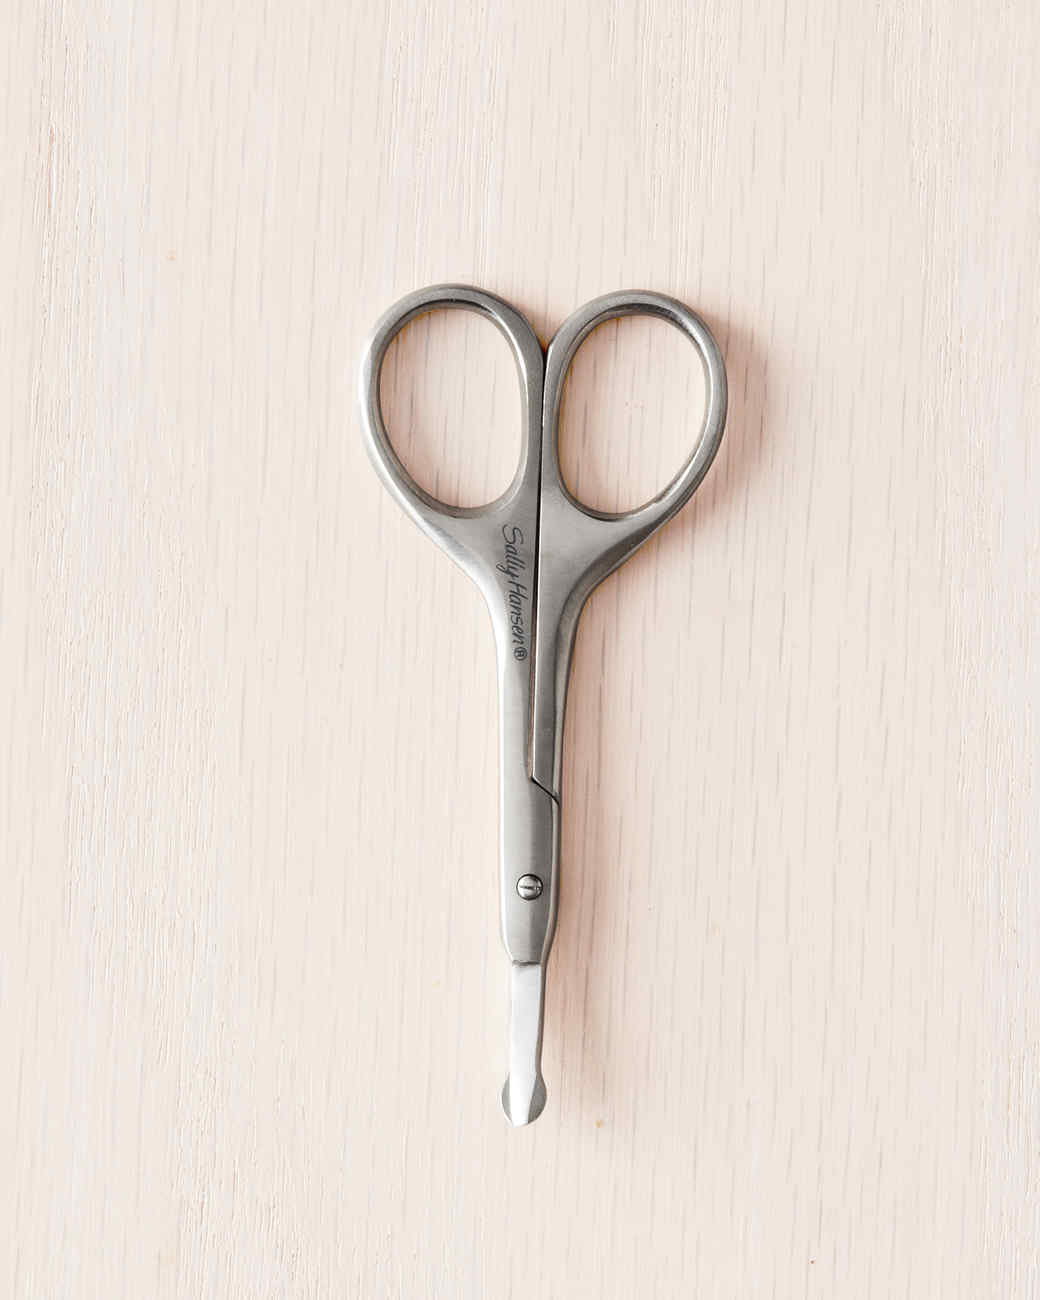 safety-scissors-composed-scissors-shot-046-d110947-0914.jpg